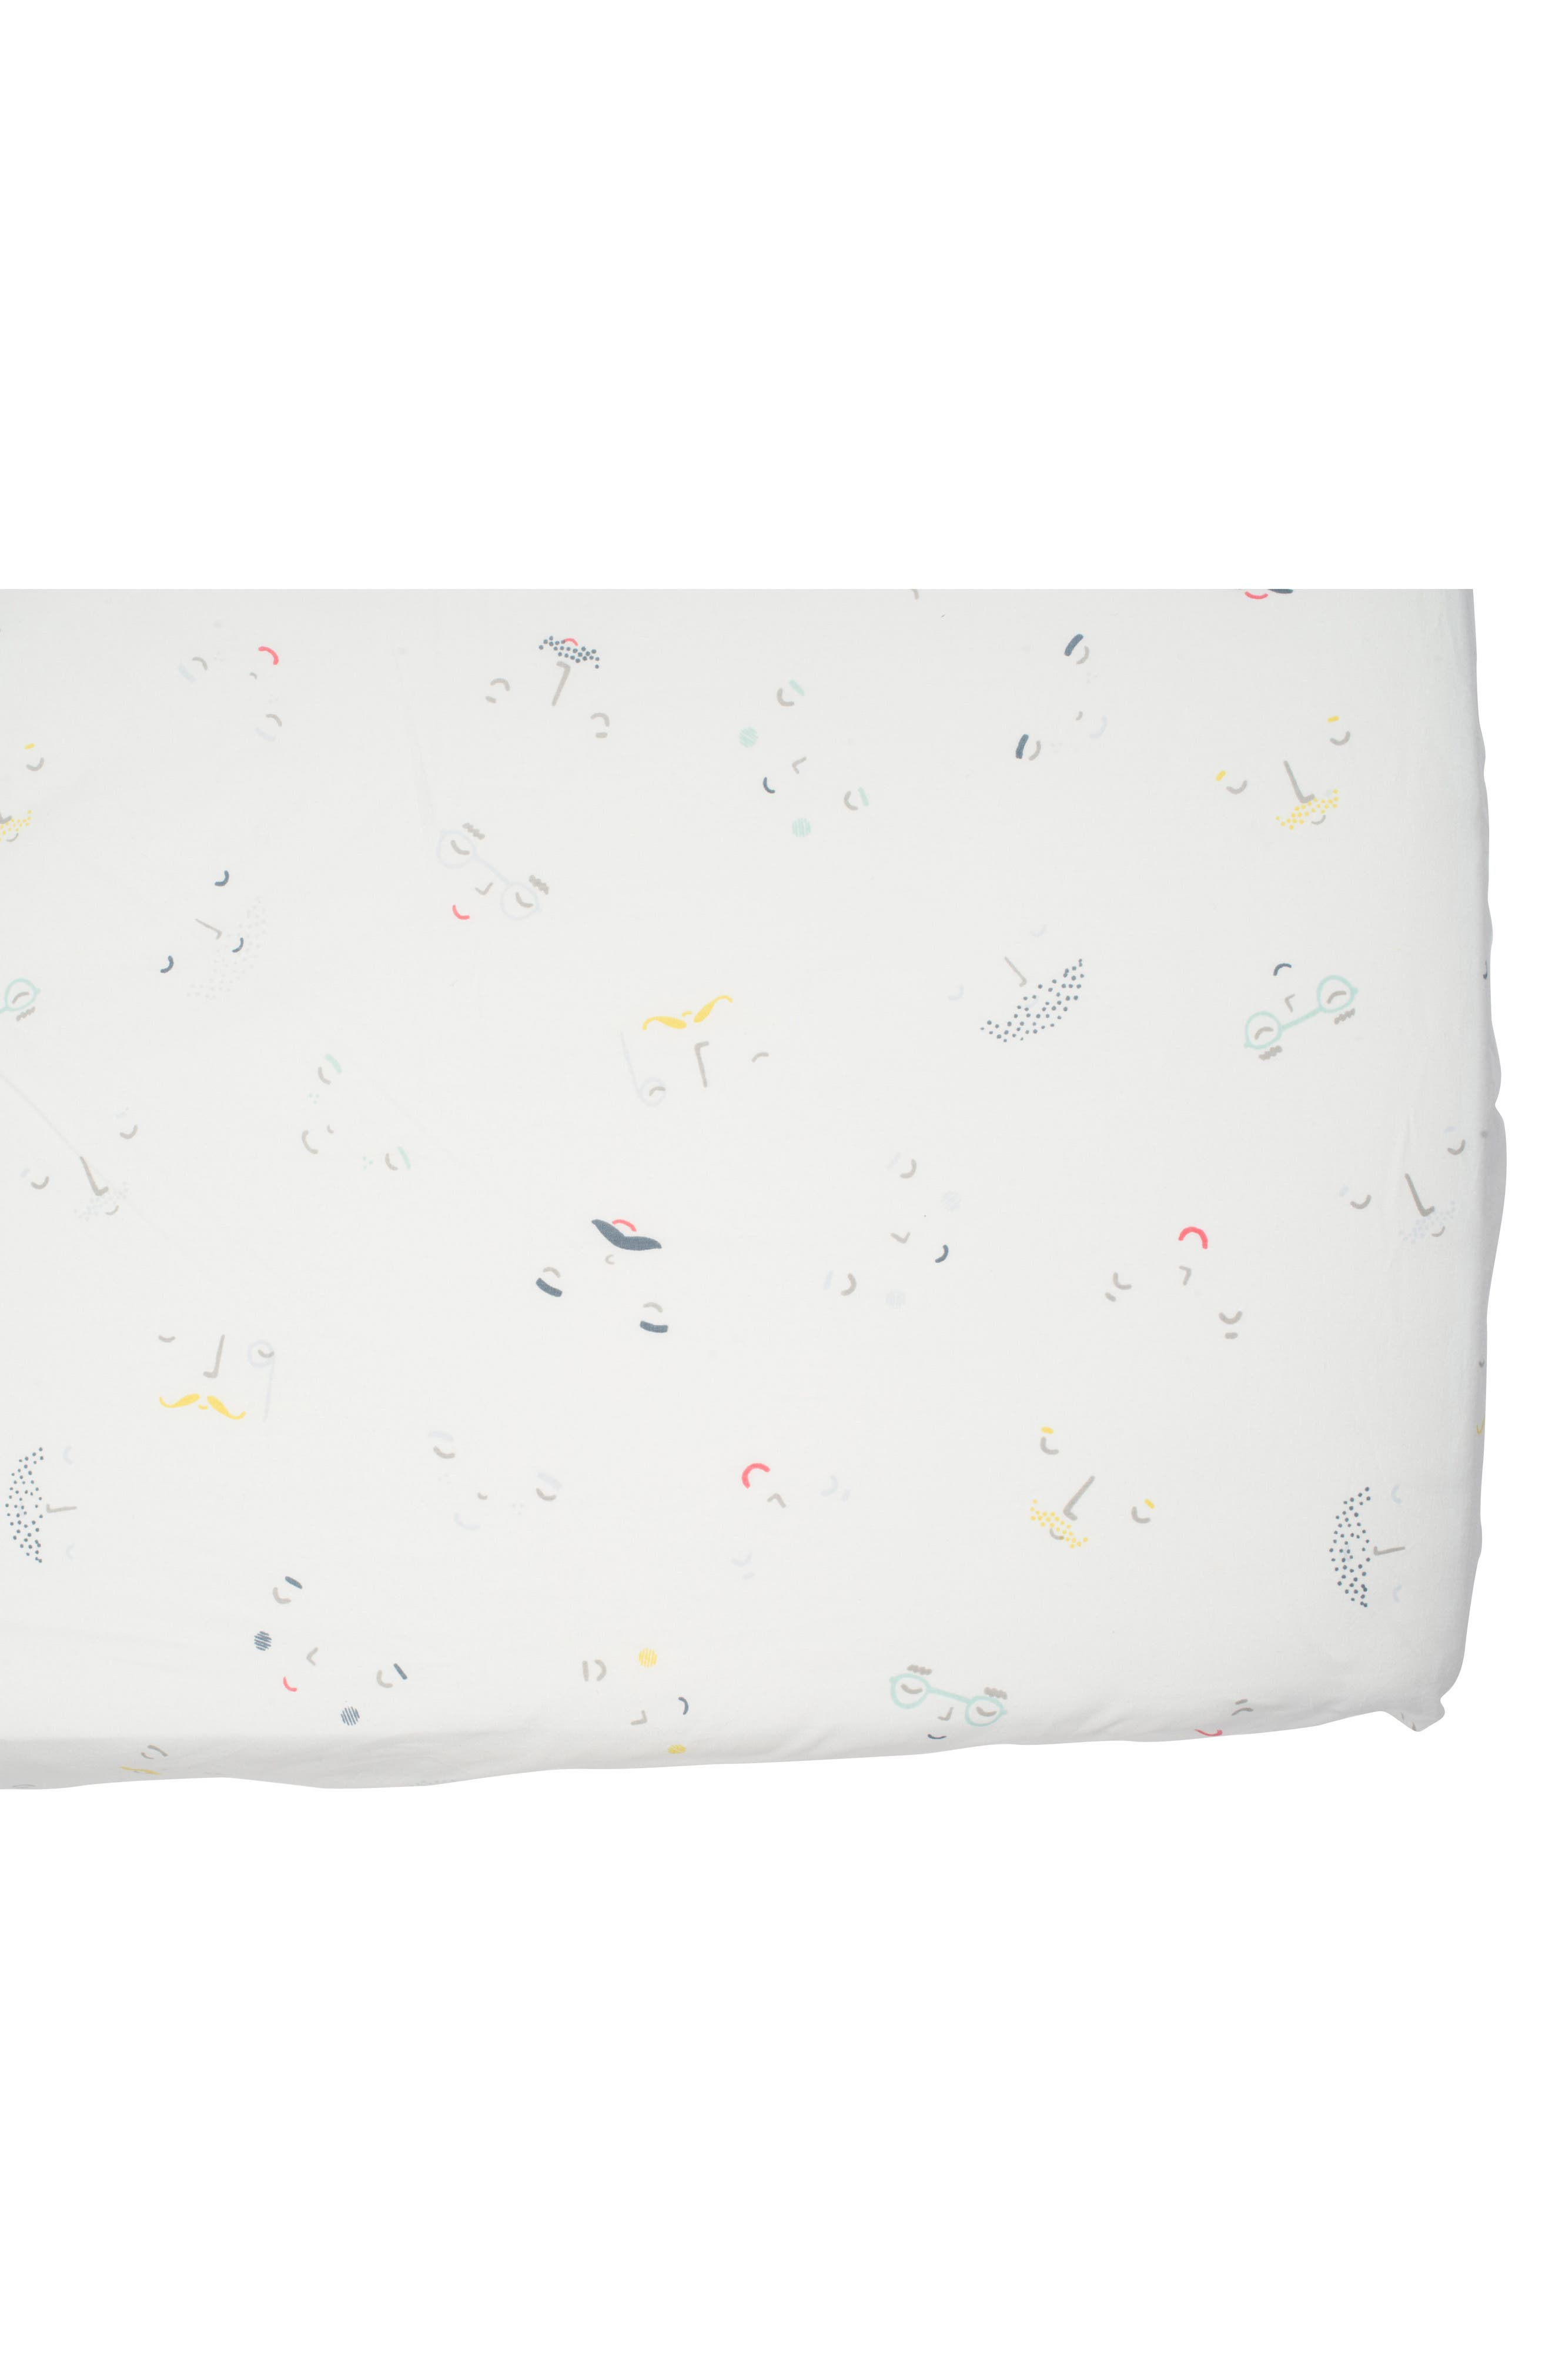 Peekaboo Crib Sheet,                             Main thumbnail 1, color,                             Ivory